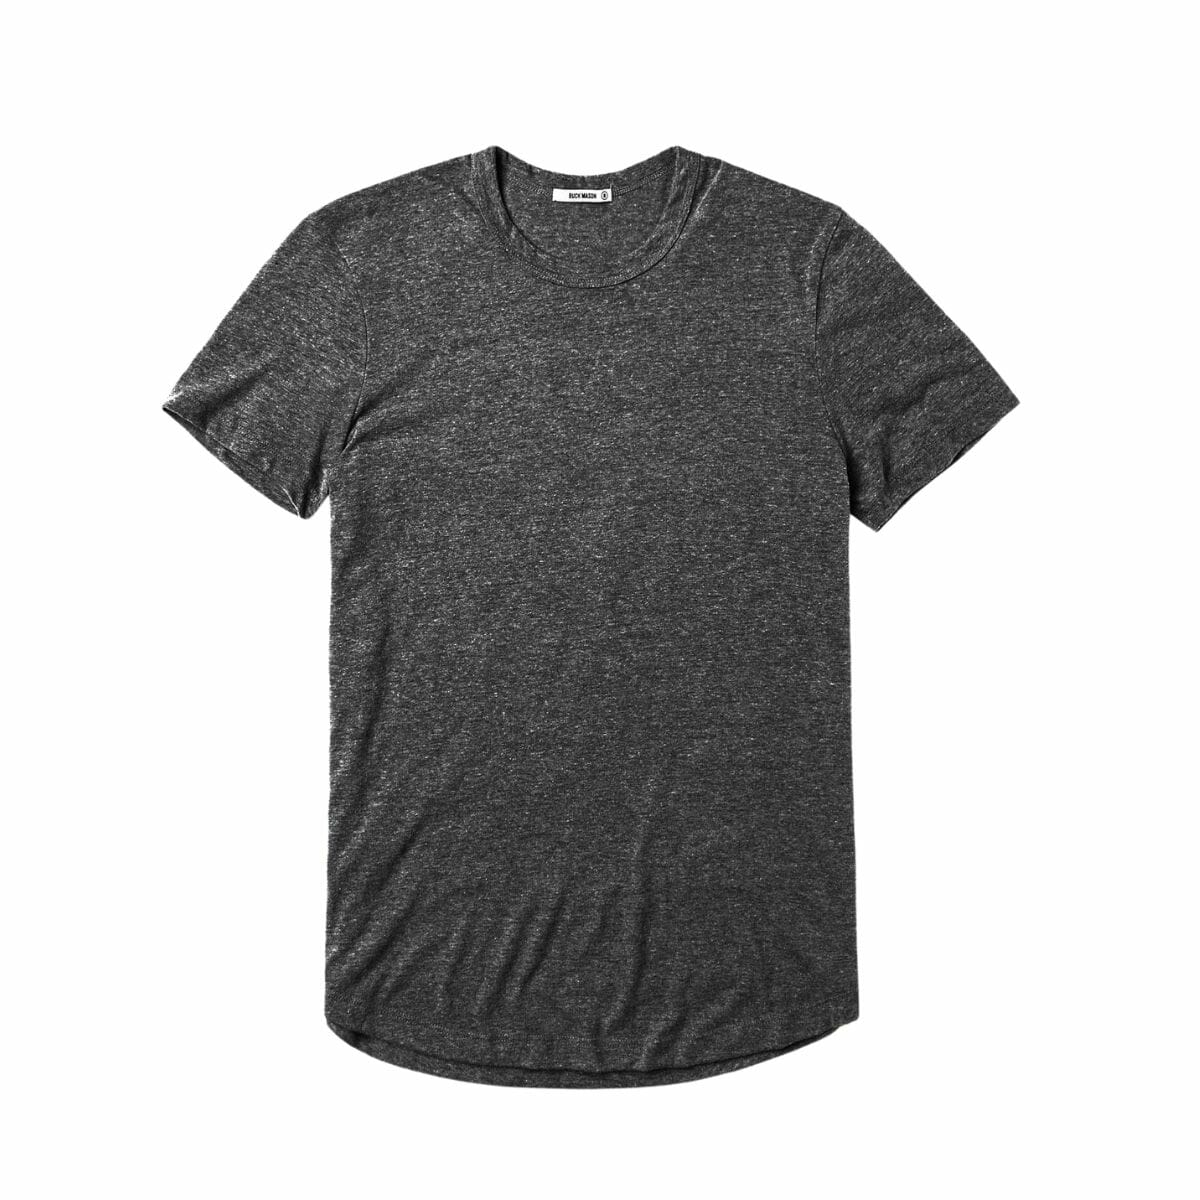 Buck Mason T-Shirt Review: Are Buck Mason Tees Worth it? 19